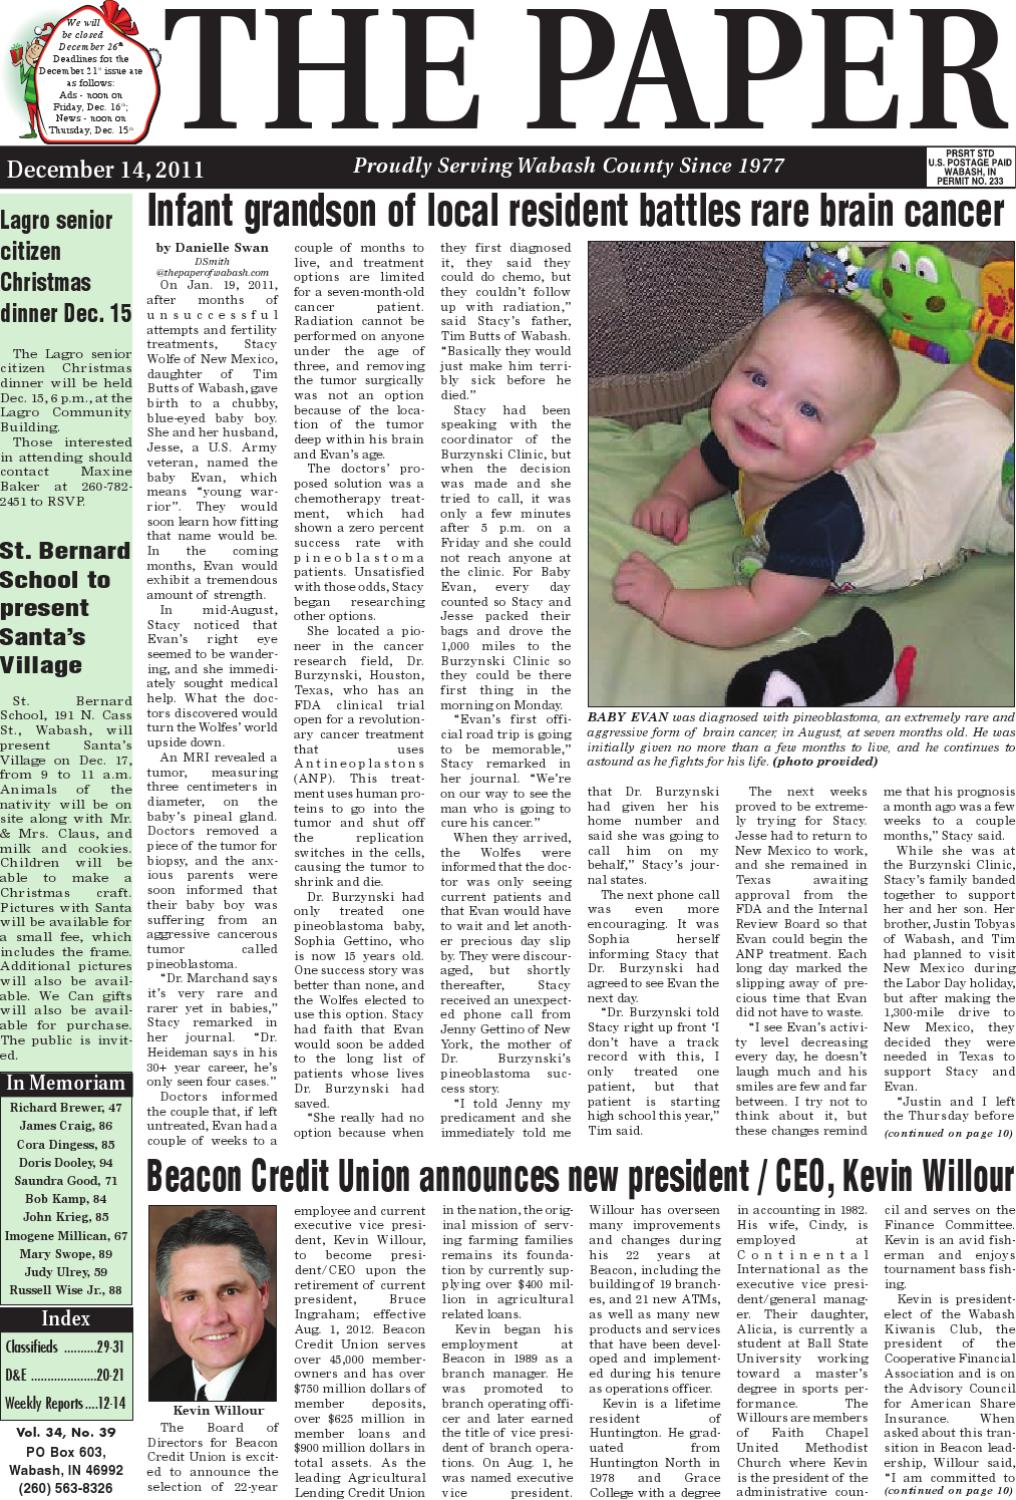 Indiana wabash county lagro - The Paper Of Wabash County 12 14 11 Issue By The Paper Of Wabash County Issuu